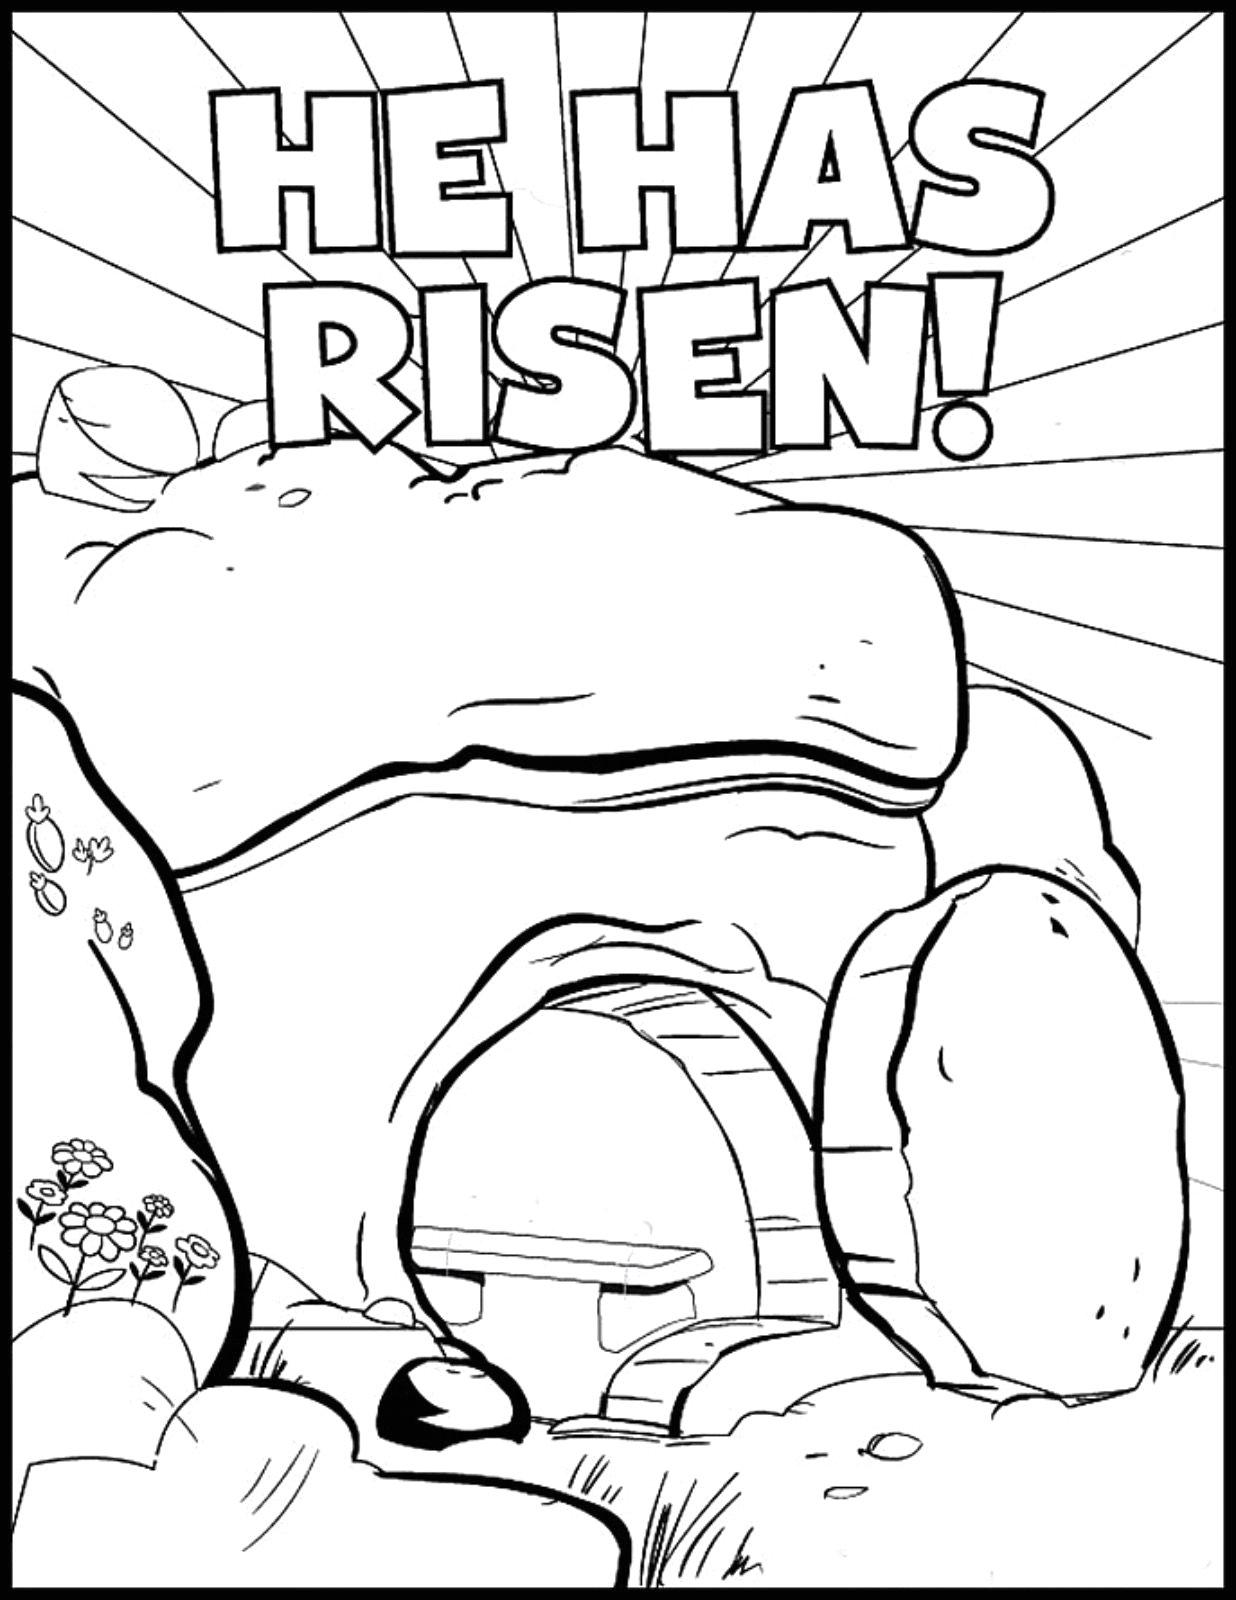 Free Printable Easter Sunday School Coloring Pages He Has Risen Coloring Page